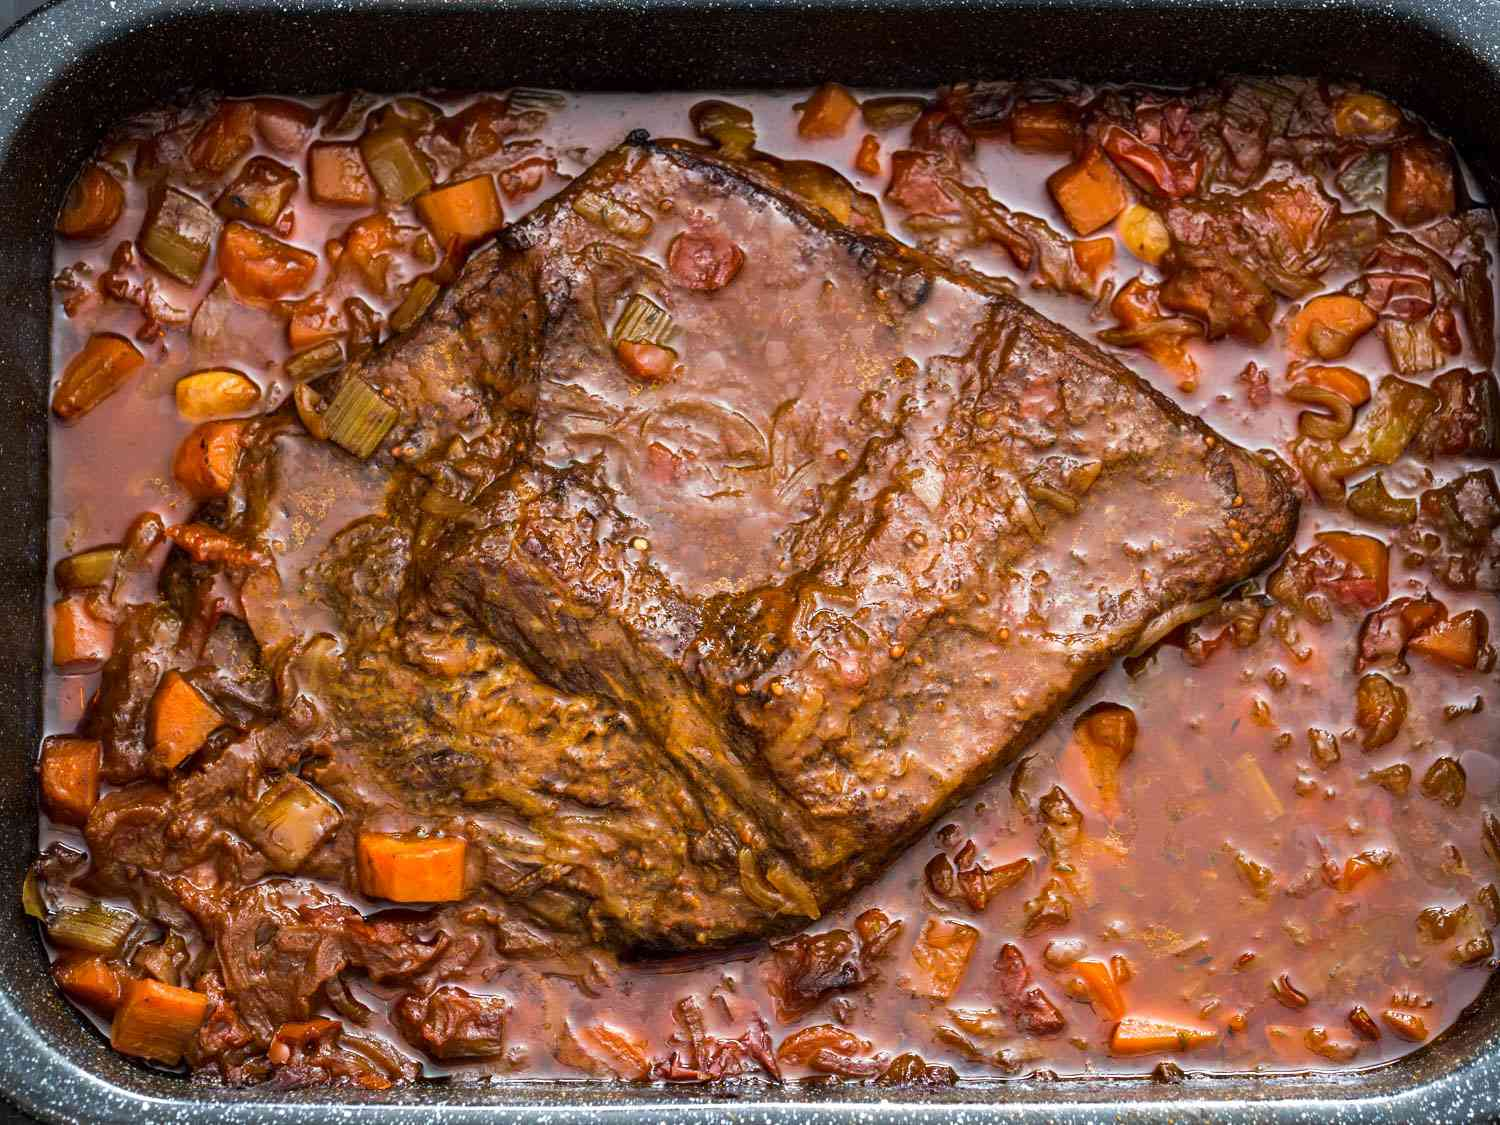 Overhead shot of a Jewish-style braised brisket in a sauce of carrots and onions